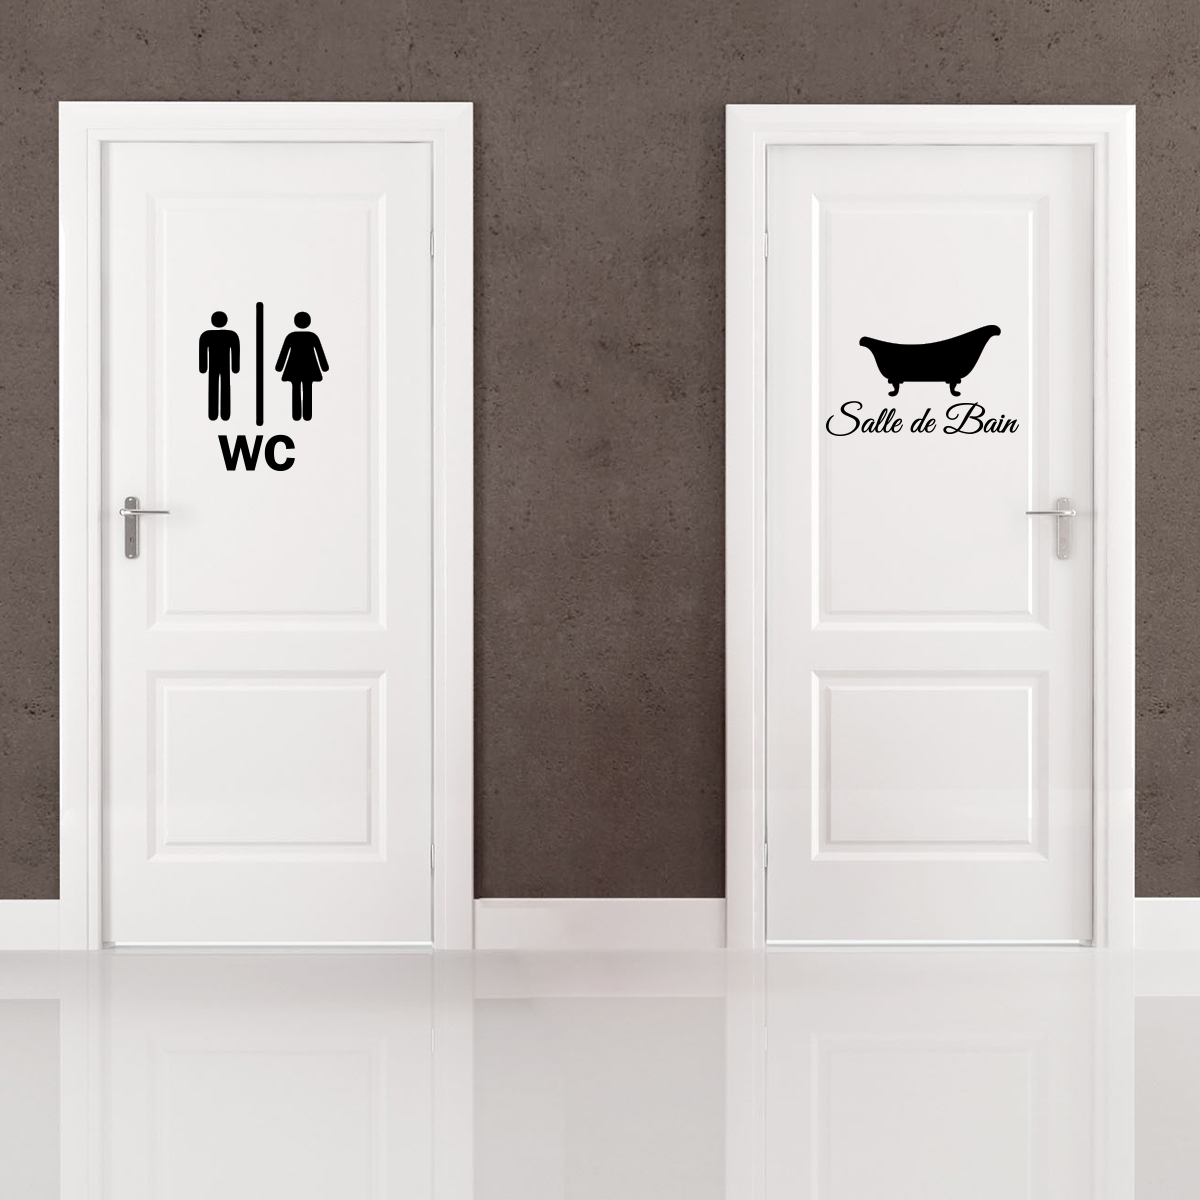 sticker porte salle de bain et wc stickers salle de bain et wc salle de bain ambiance sticker. Black Bedroom Furniture Sets. Home Design Ideas